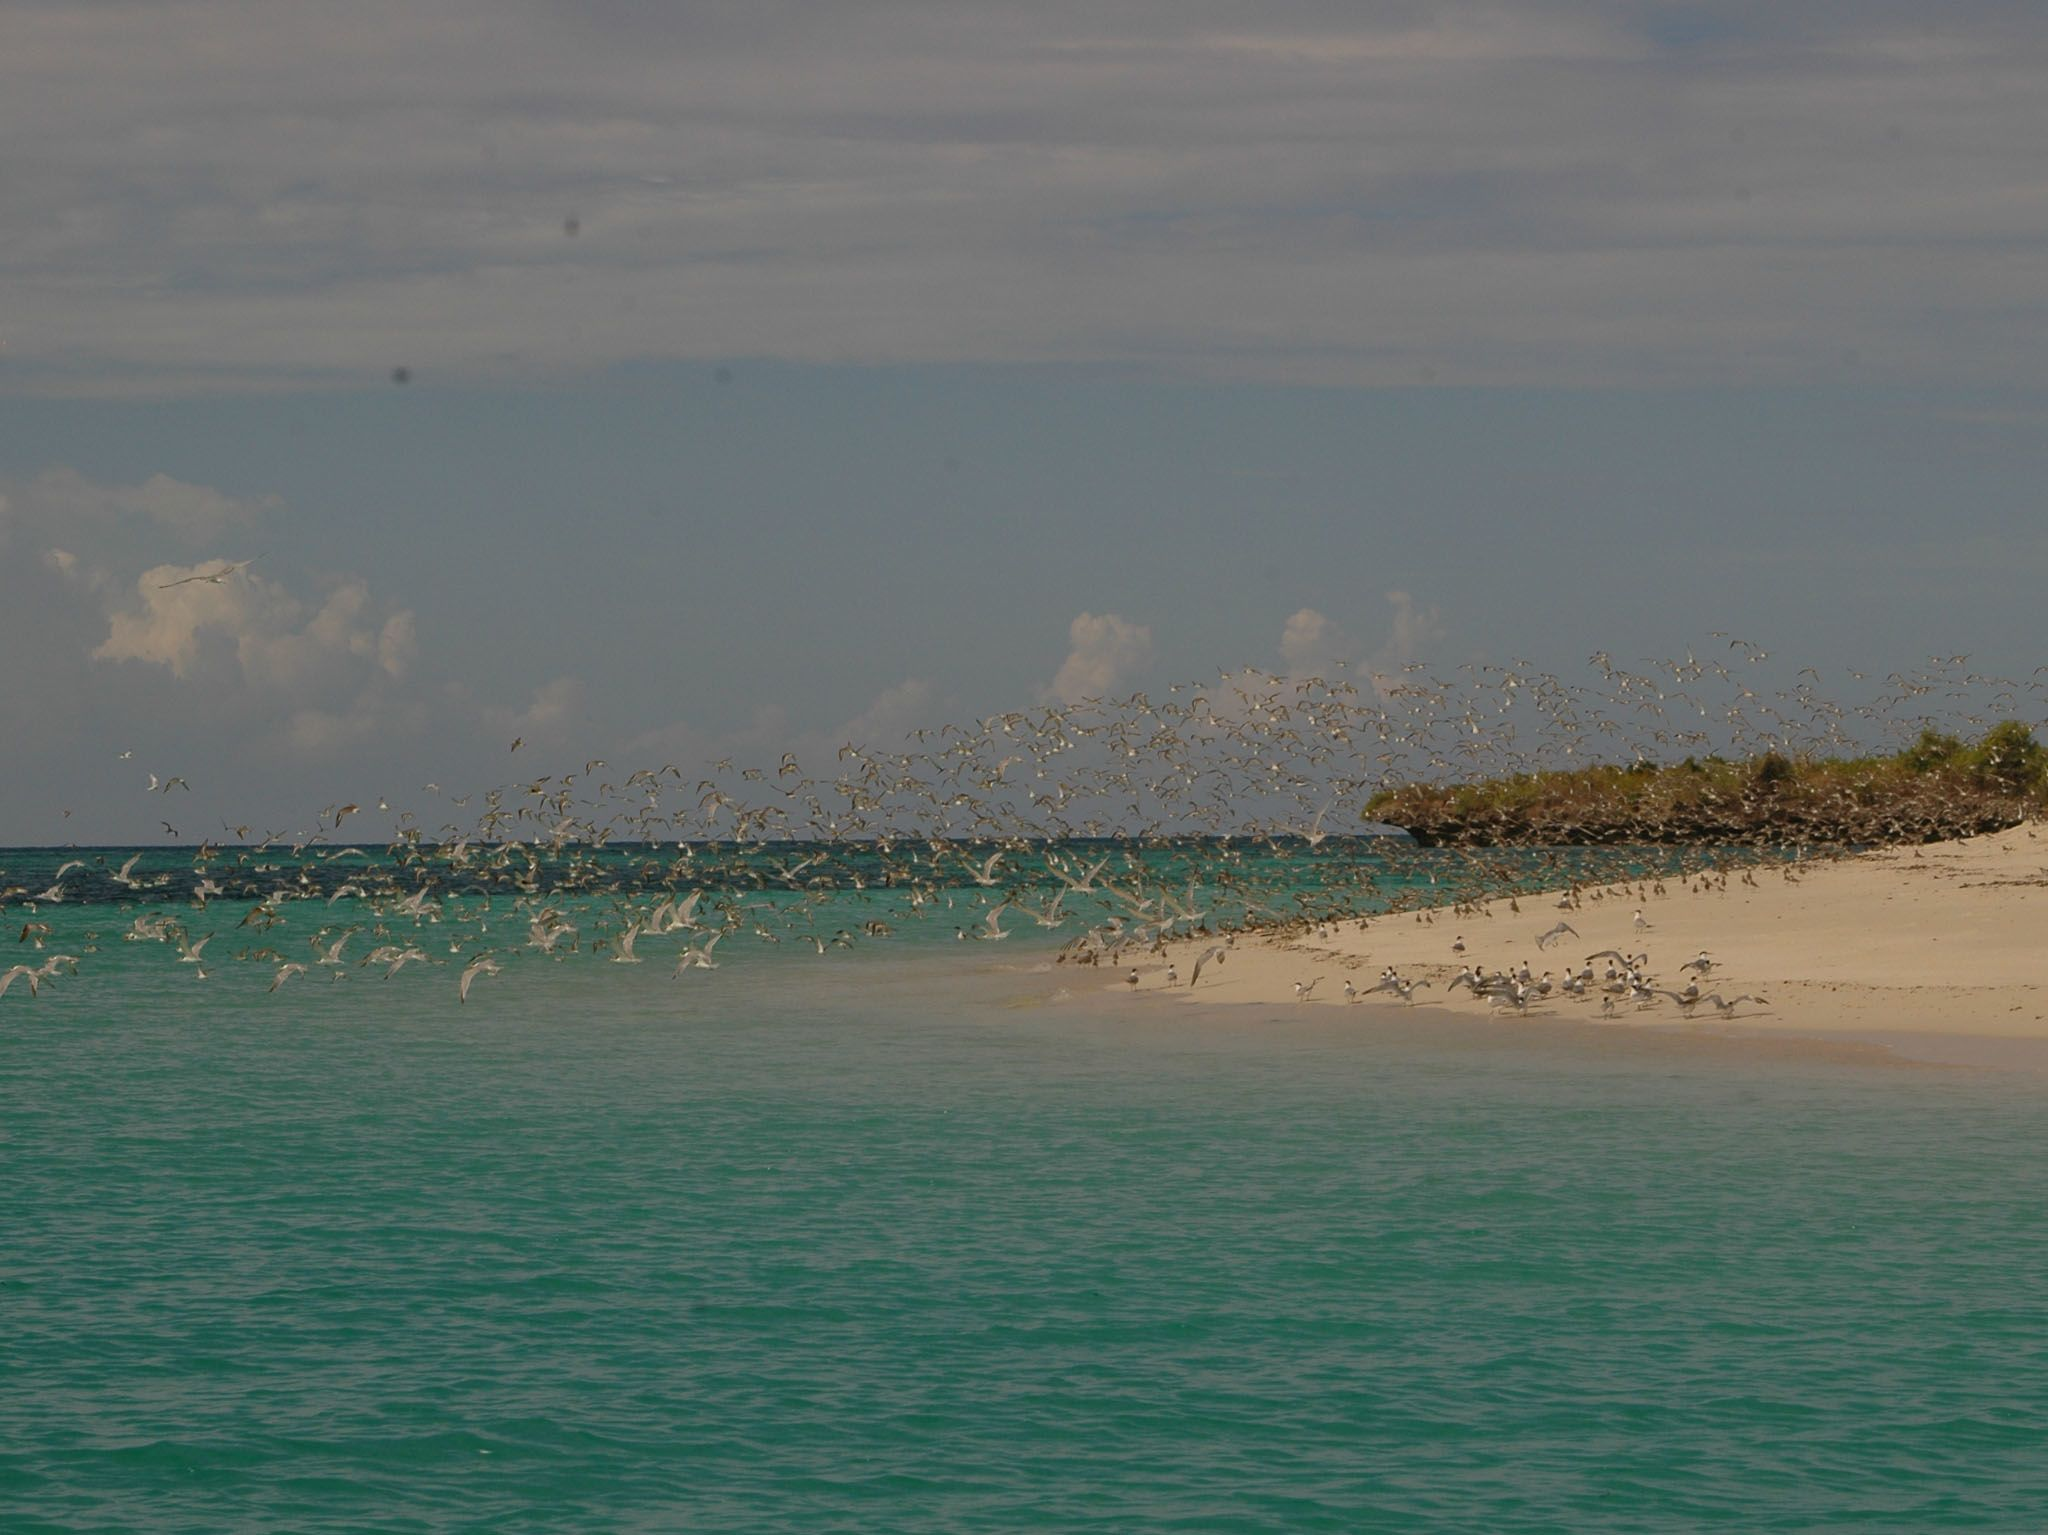 Fanjove Island, Tanzania - Birds on the island. This is from Jane Goodall: Saving Paradise [Photo of the day - May 2021]